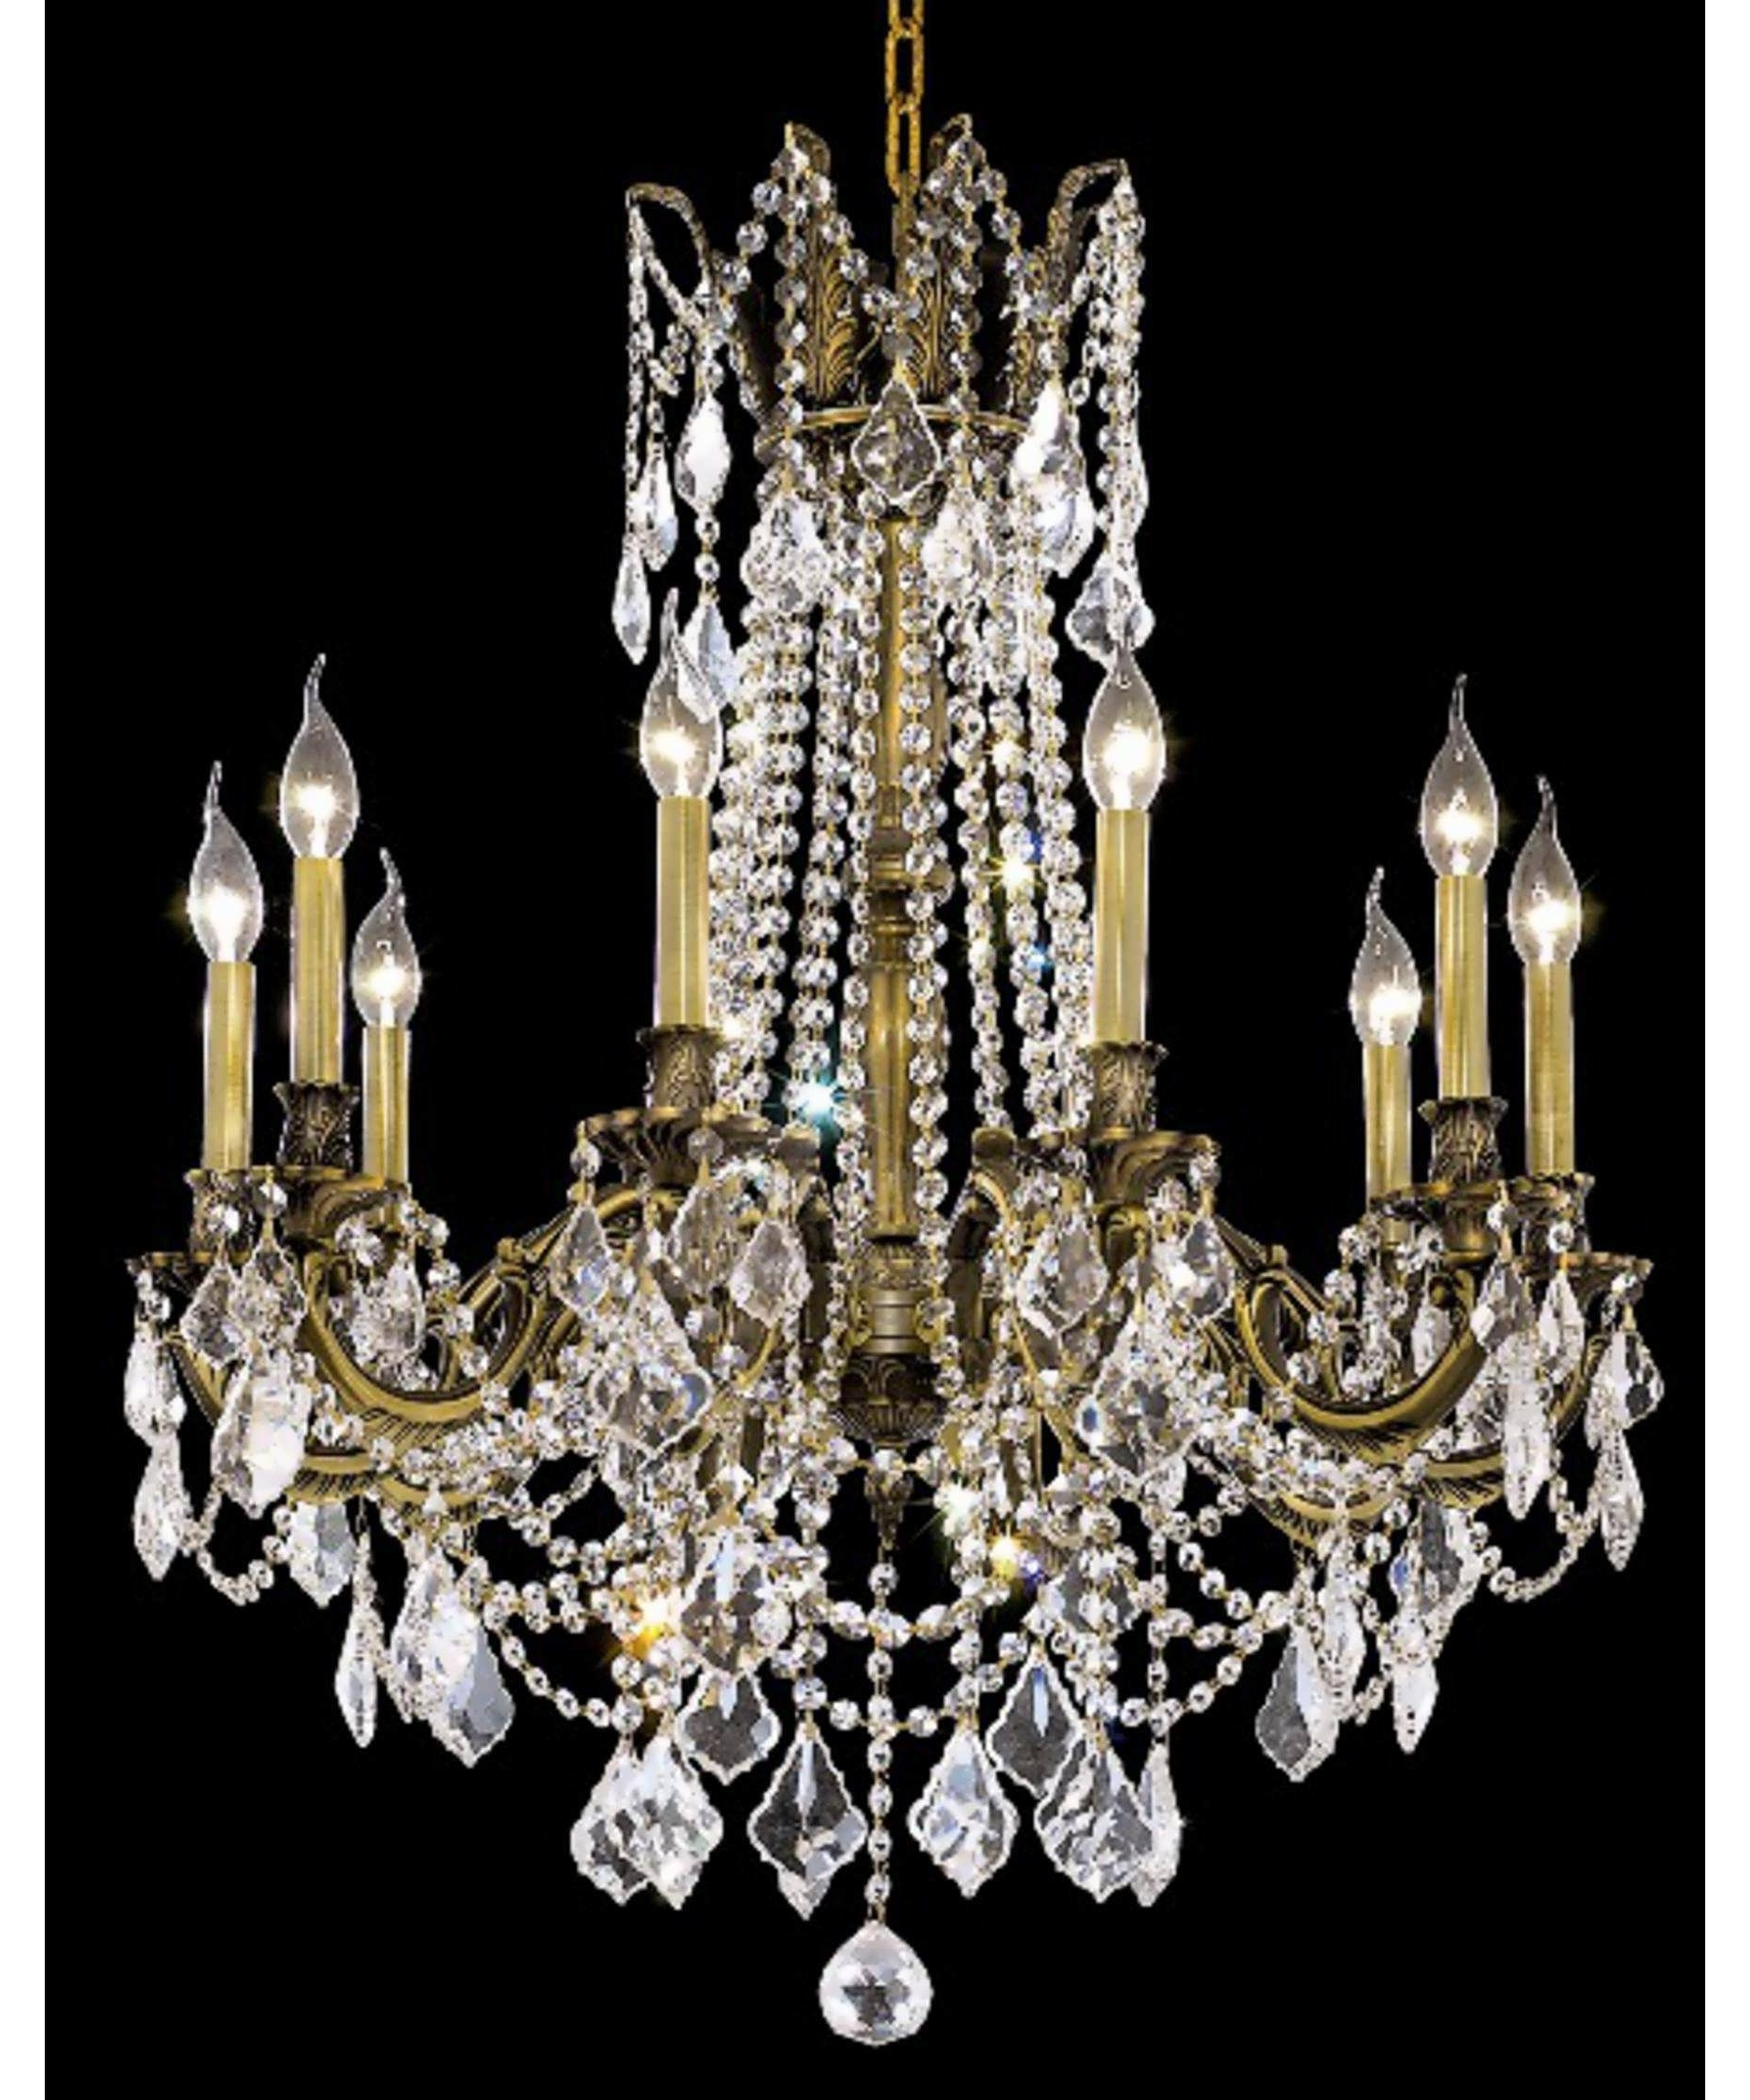 Traditional Crystal Chandeliers With Regard To Trendy Chandelier : Traditional Crystal Chandeliers Wood Chandelier Light (View 11 of 20)